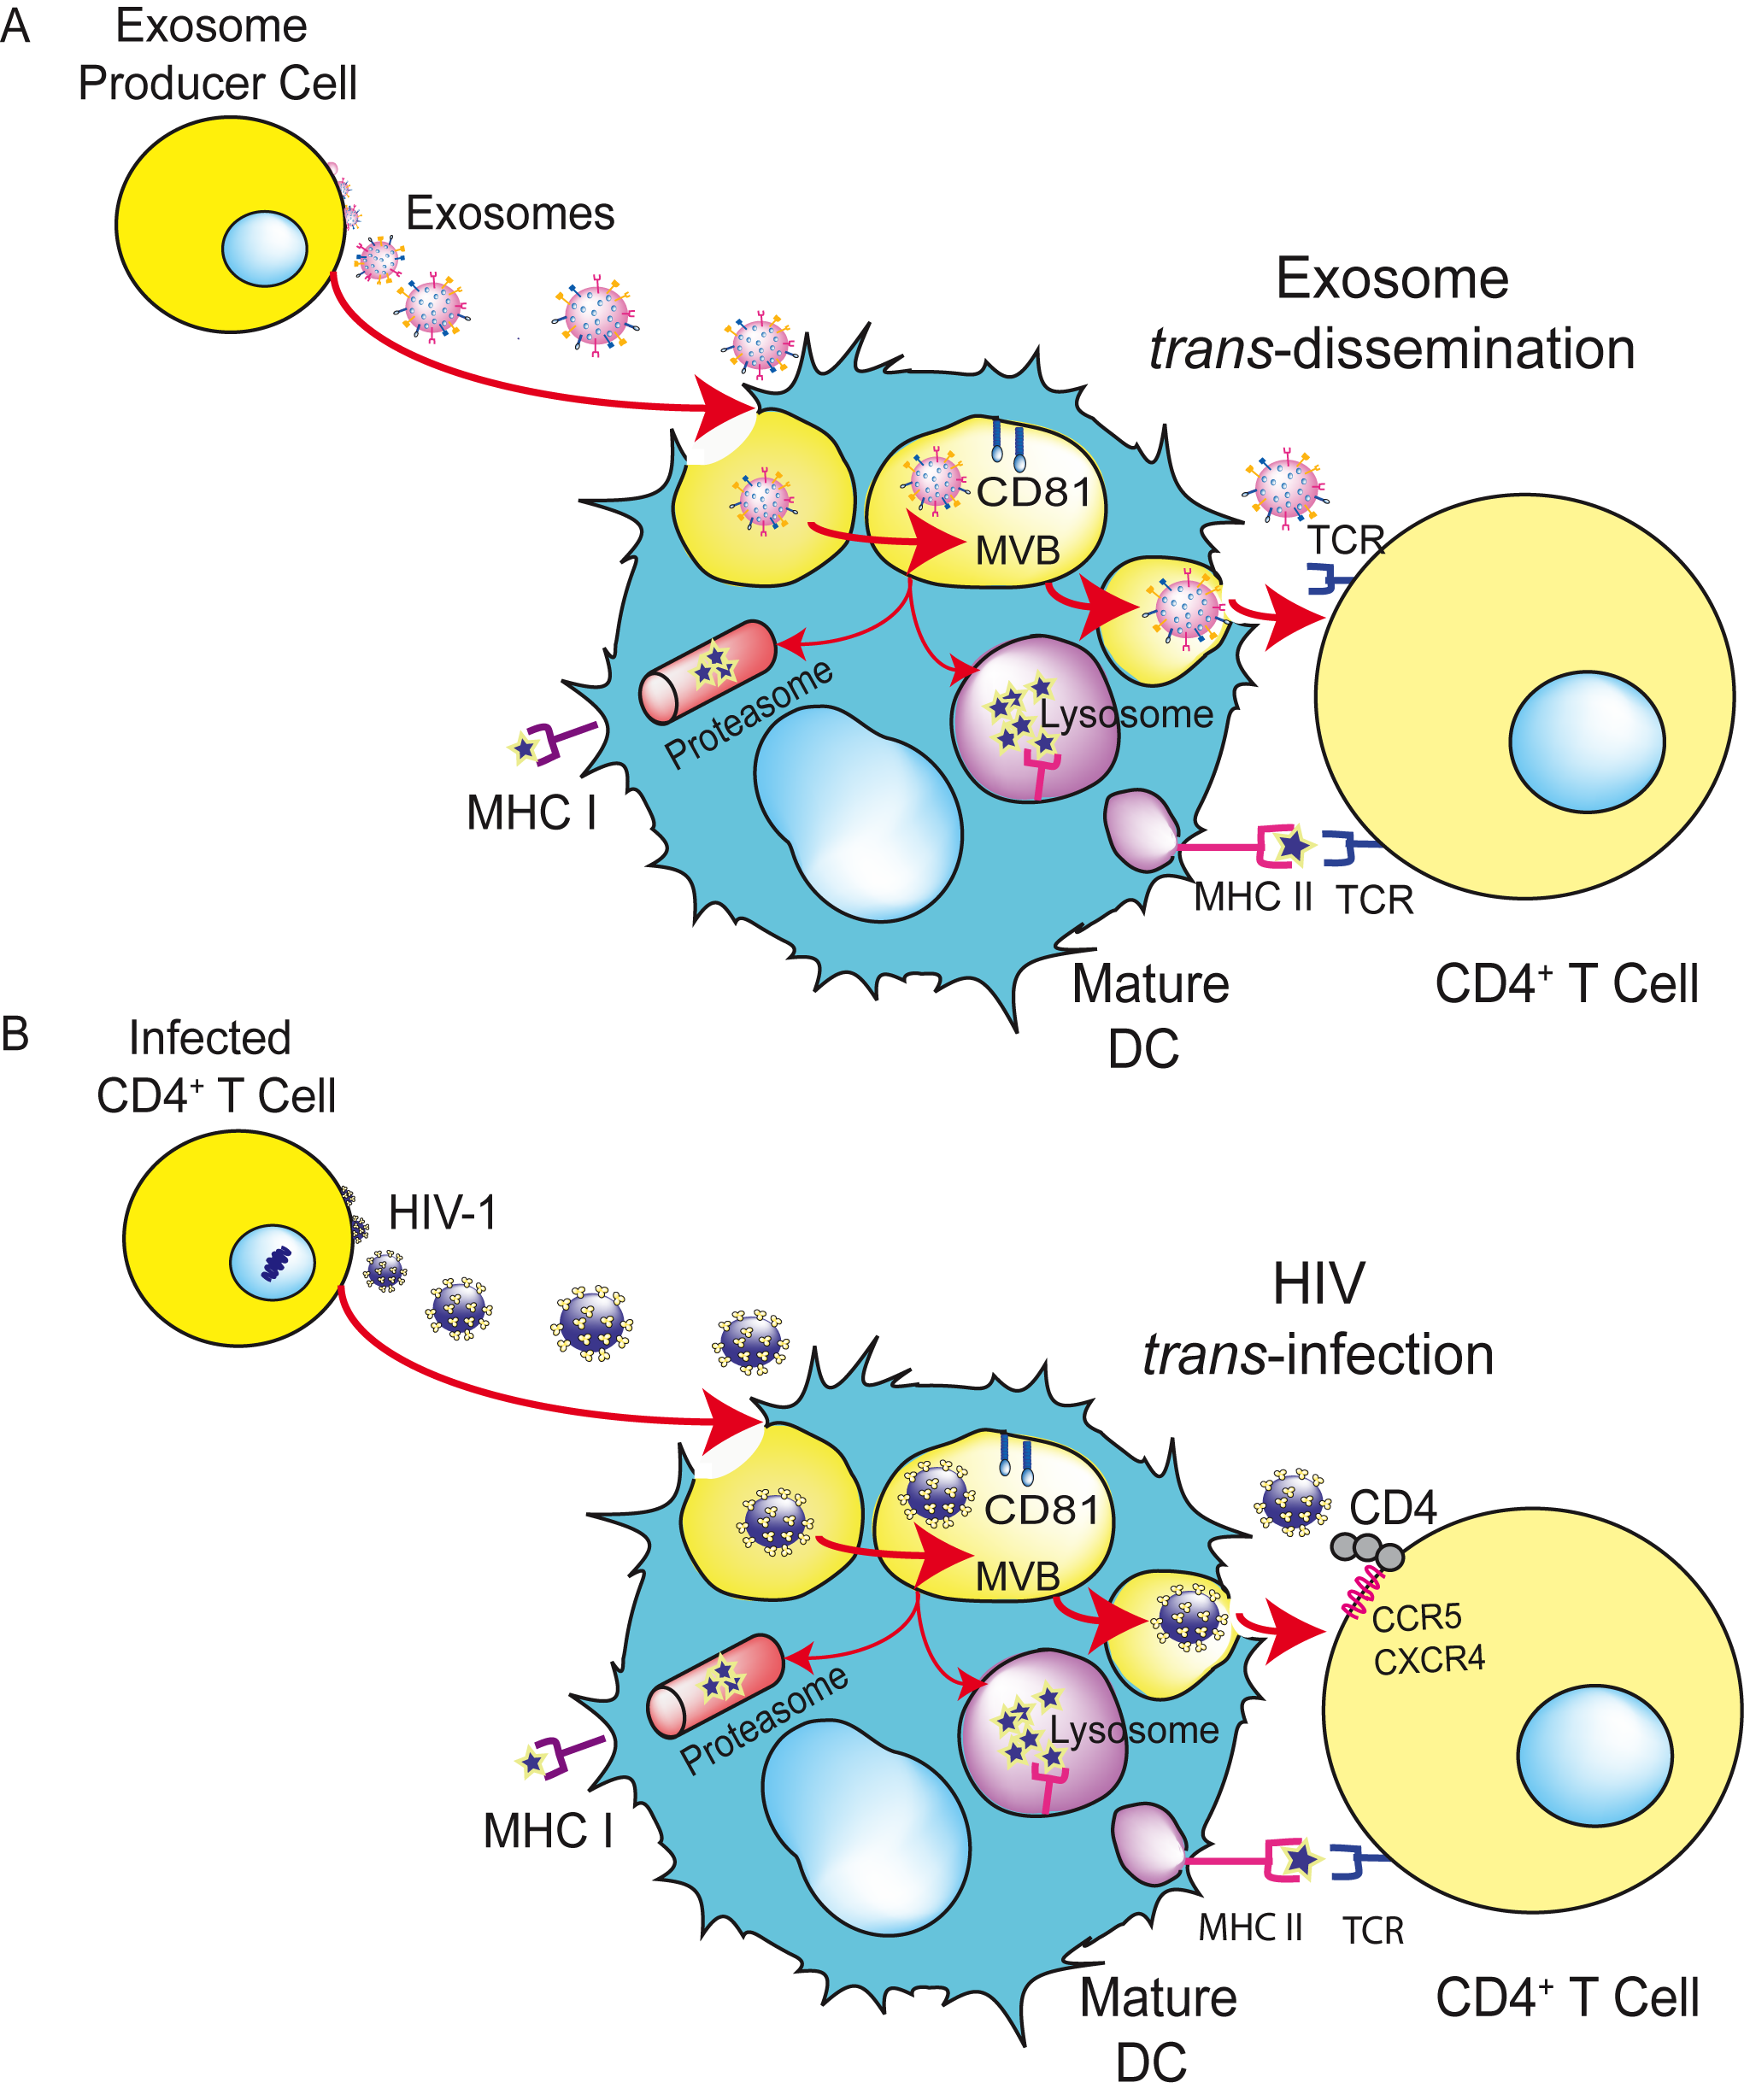 HIV can exploit a preexisting exosome <i>trans</i>-dissemination pathway intrinsic to mDCs, allowing the final <i>trans</i>-infection of CD4<sup>+</sup> T cells.